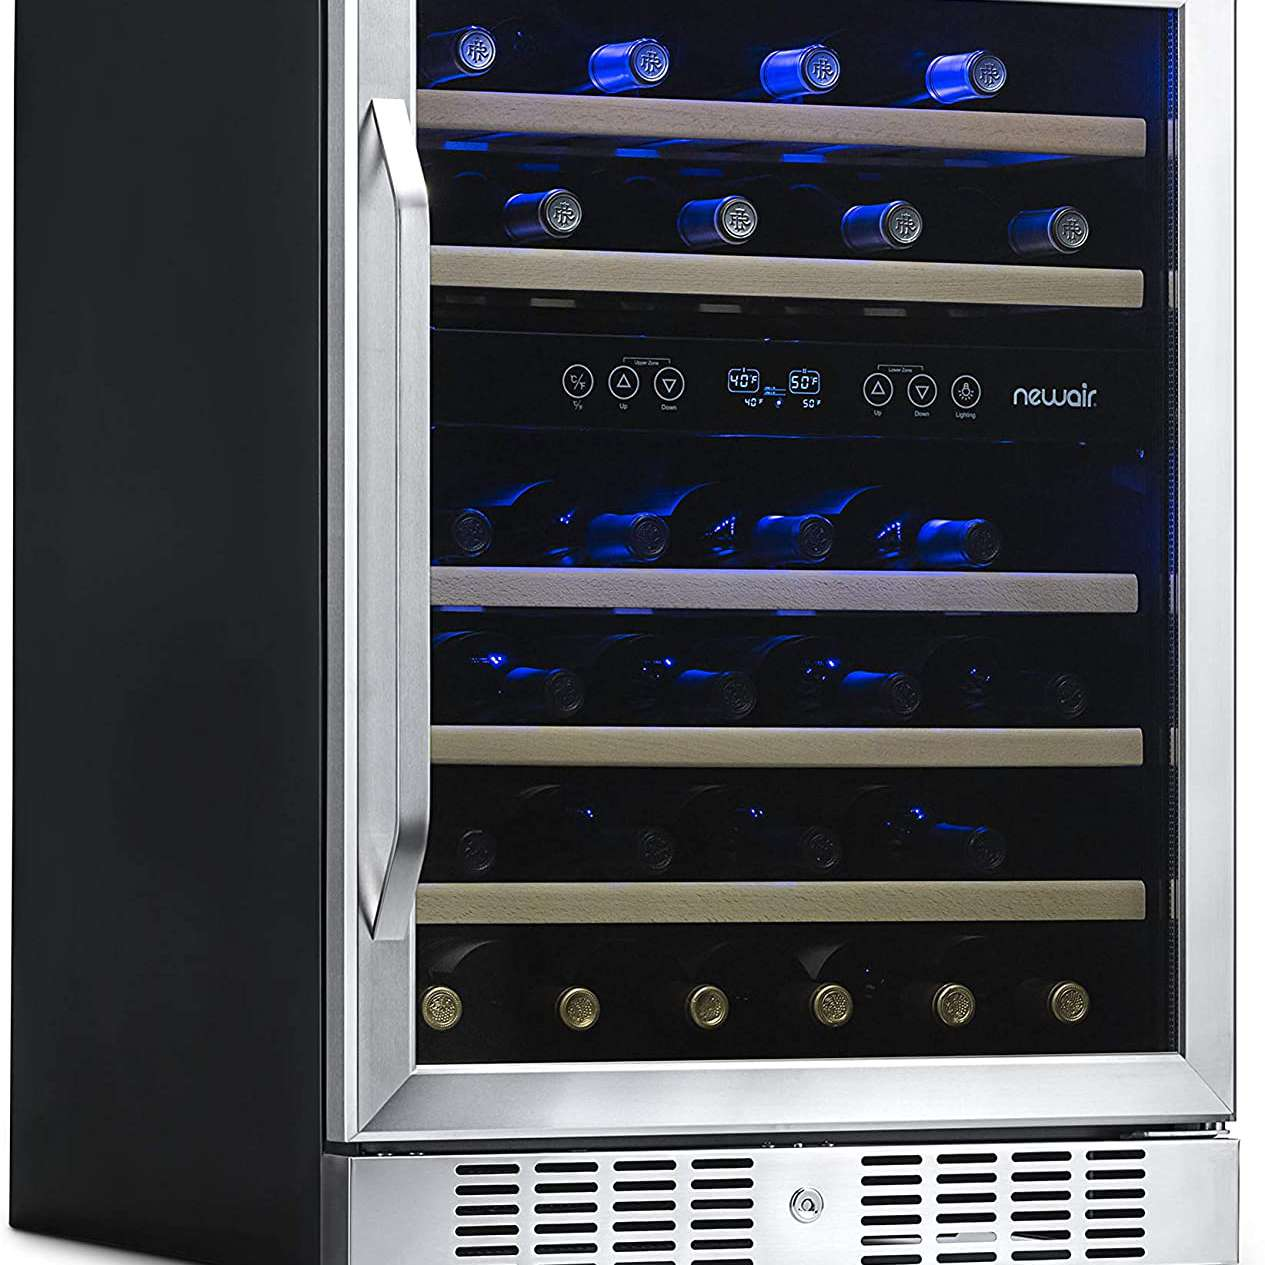 NewAir Built-in Wine Cooler and Dual Zone 46-Bottle Refrigerator AWR-460DB